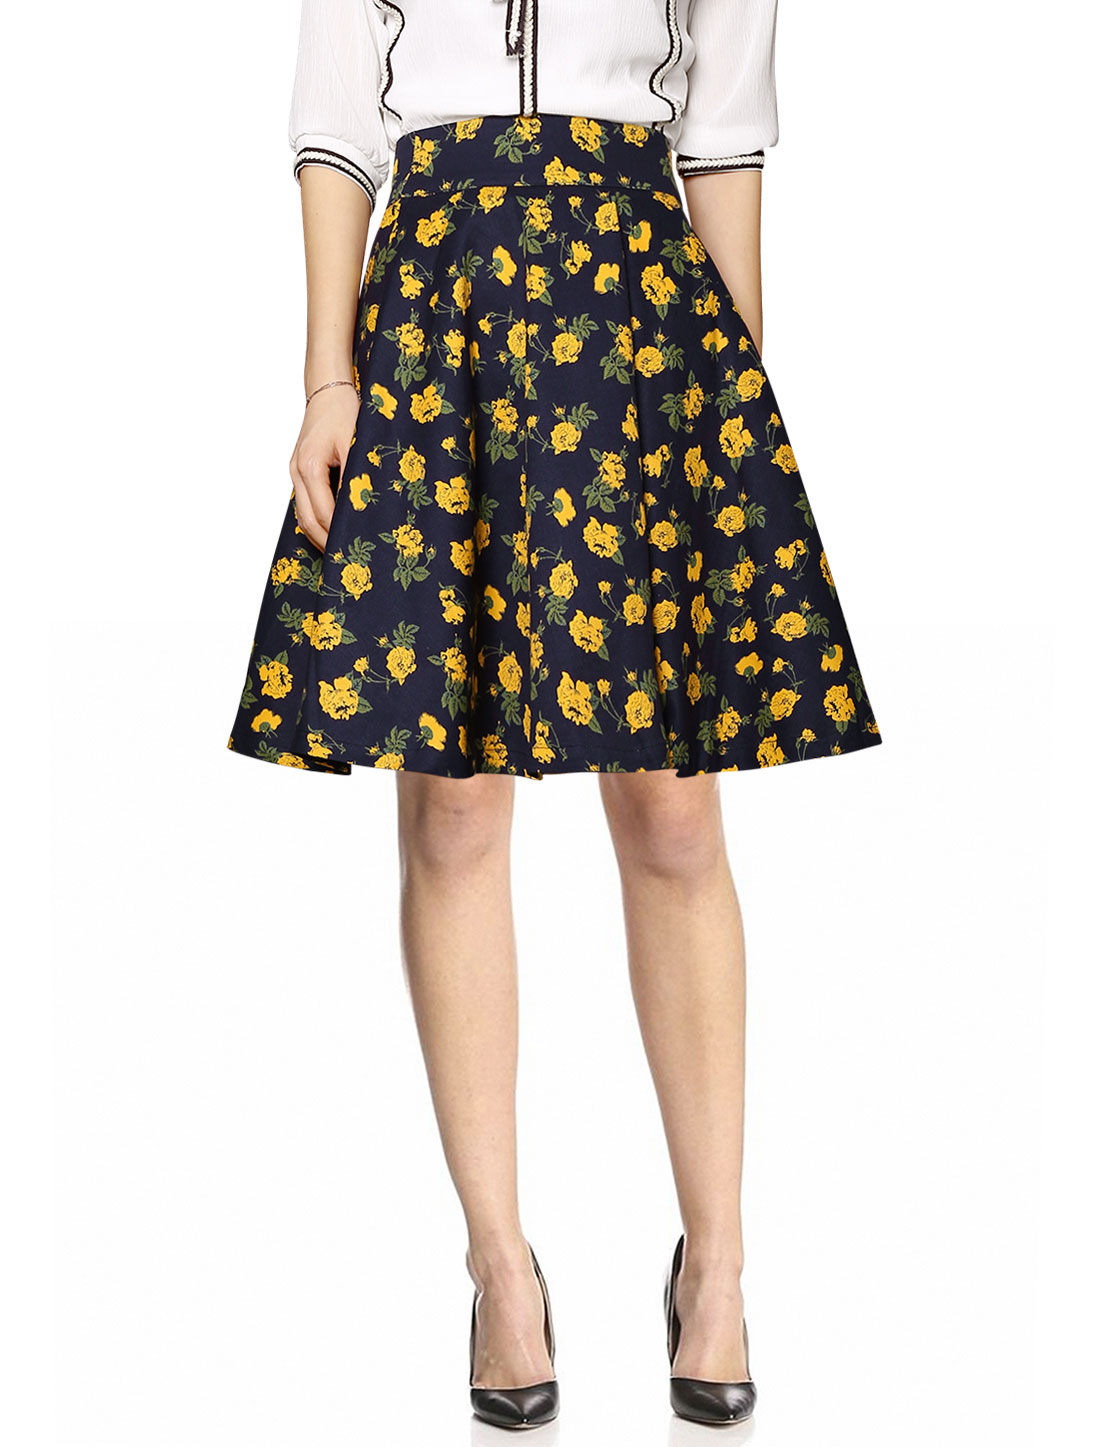 Lady High Waist Floral Prints Above Knee Vintage Full Skirts Navy Blue Yellow XL